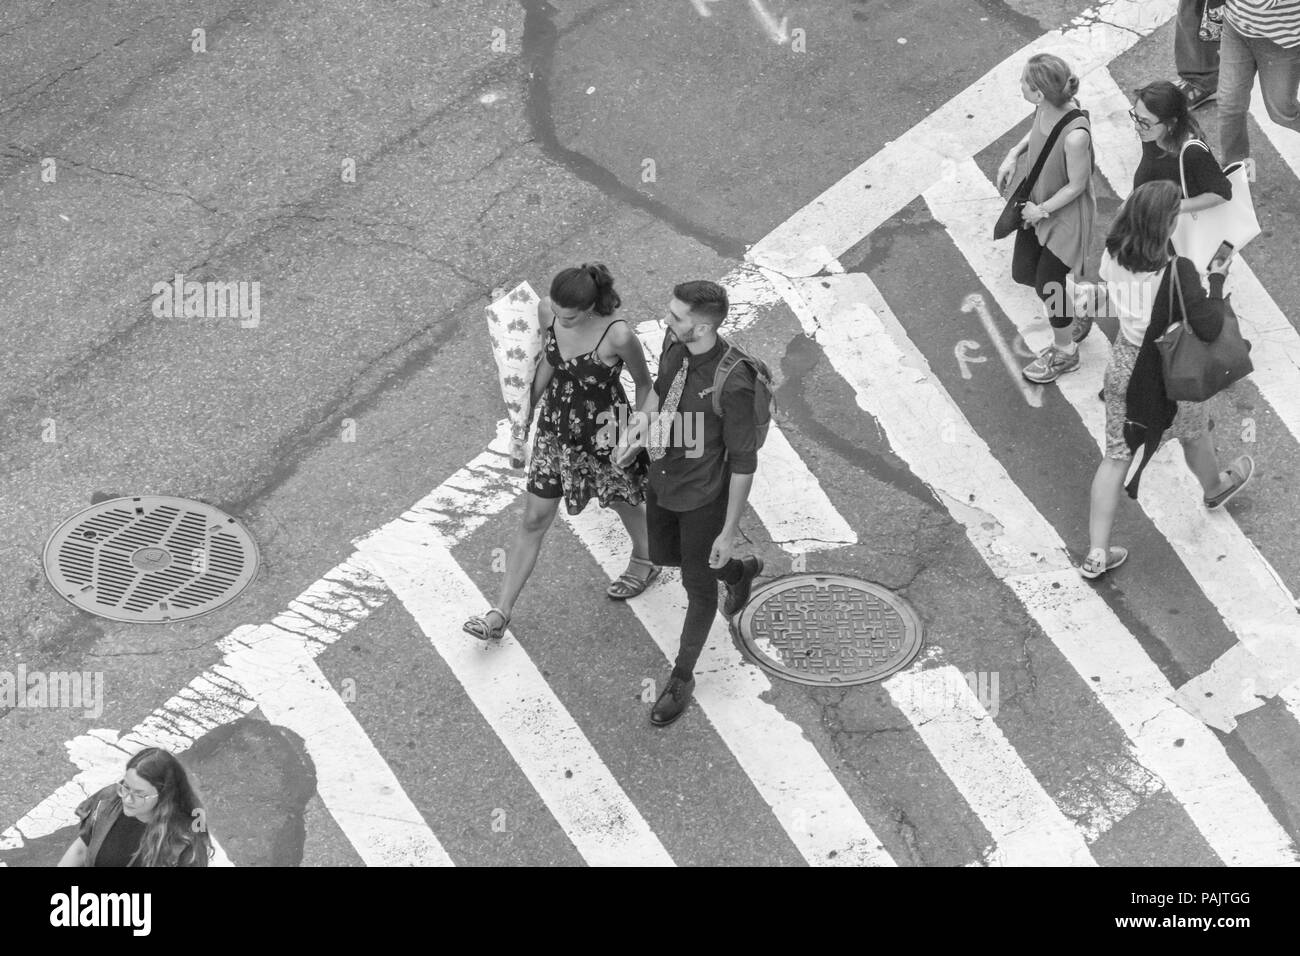 a view from above of people walking in a crosswalk at 61st street and Broadway in New York City - Stock Image